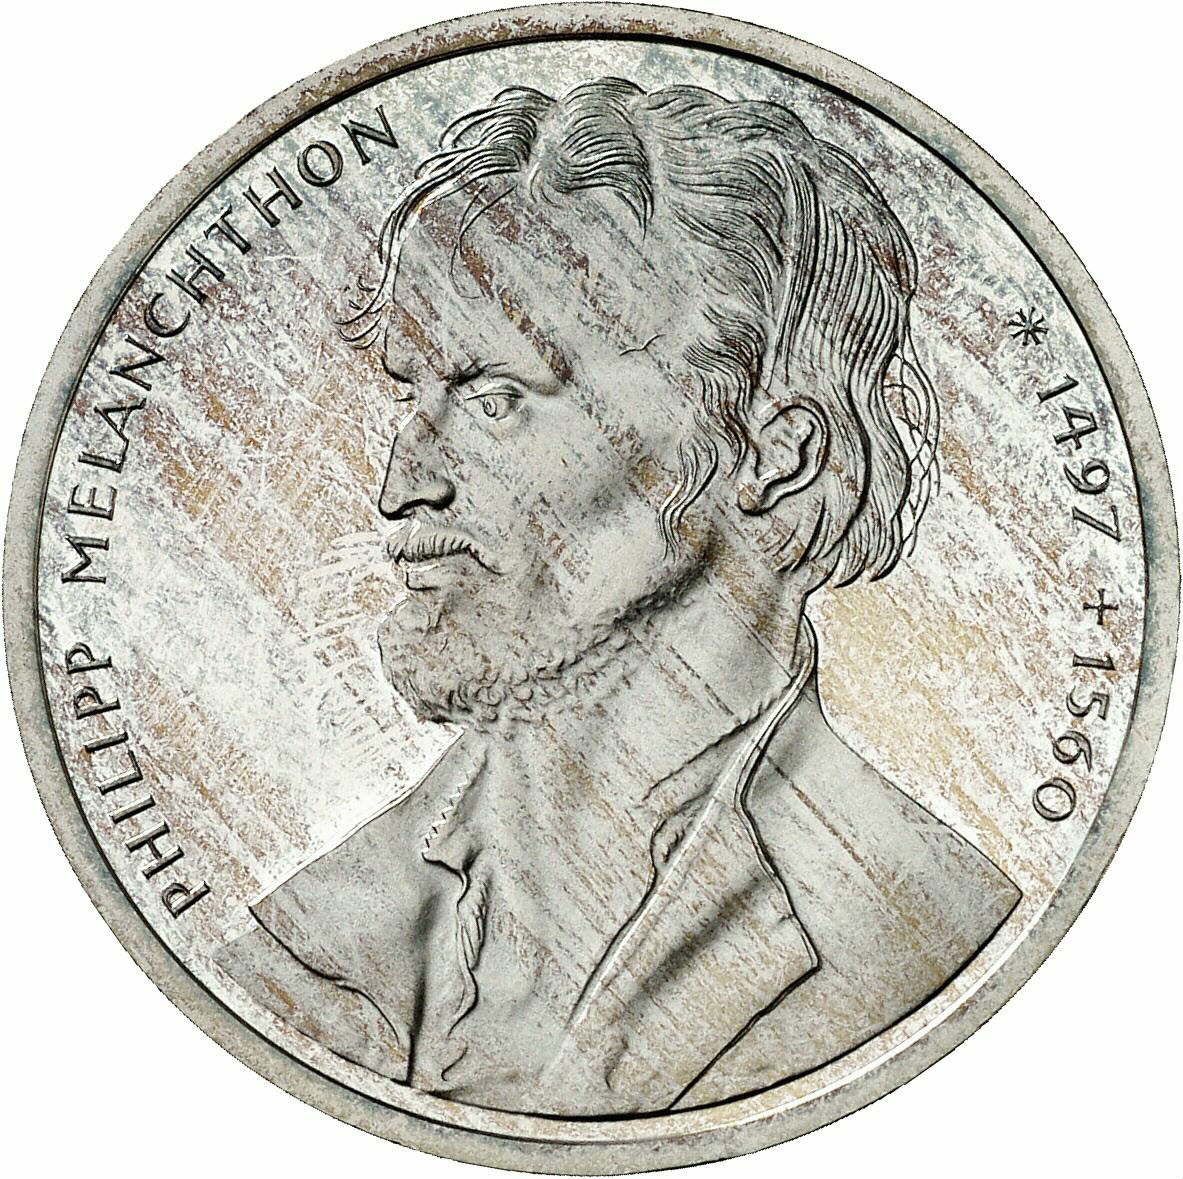 DE 10 Deutsche Mark 1997 A